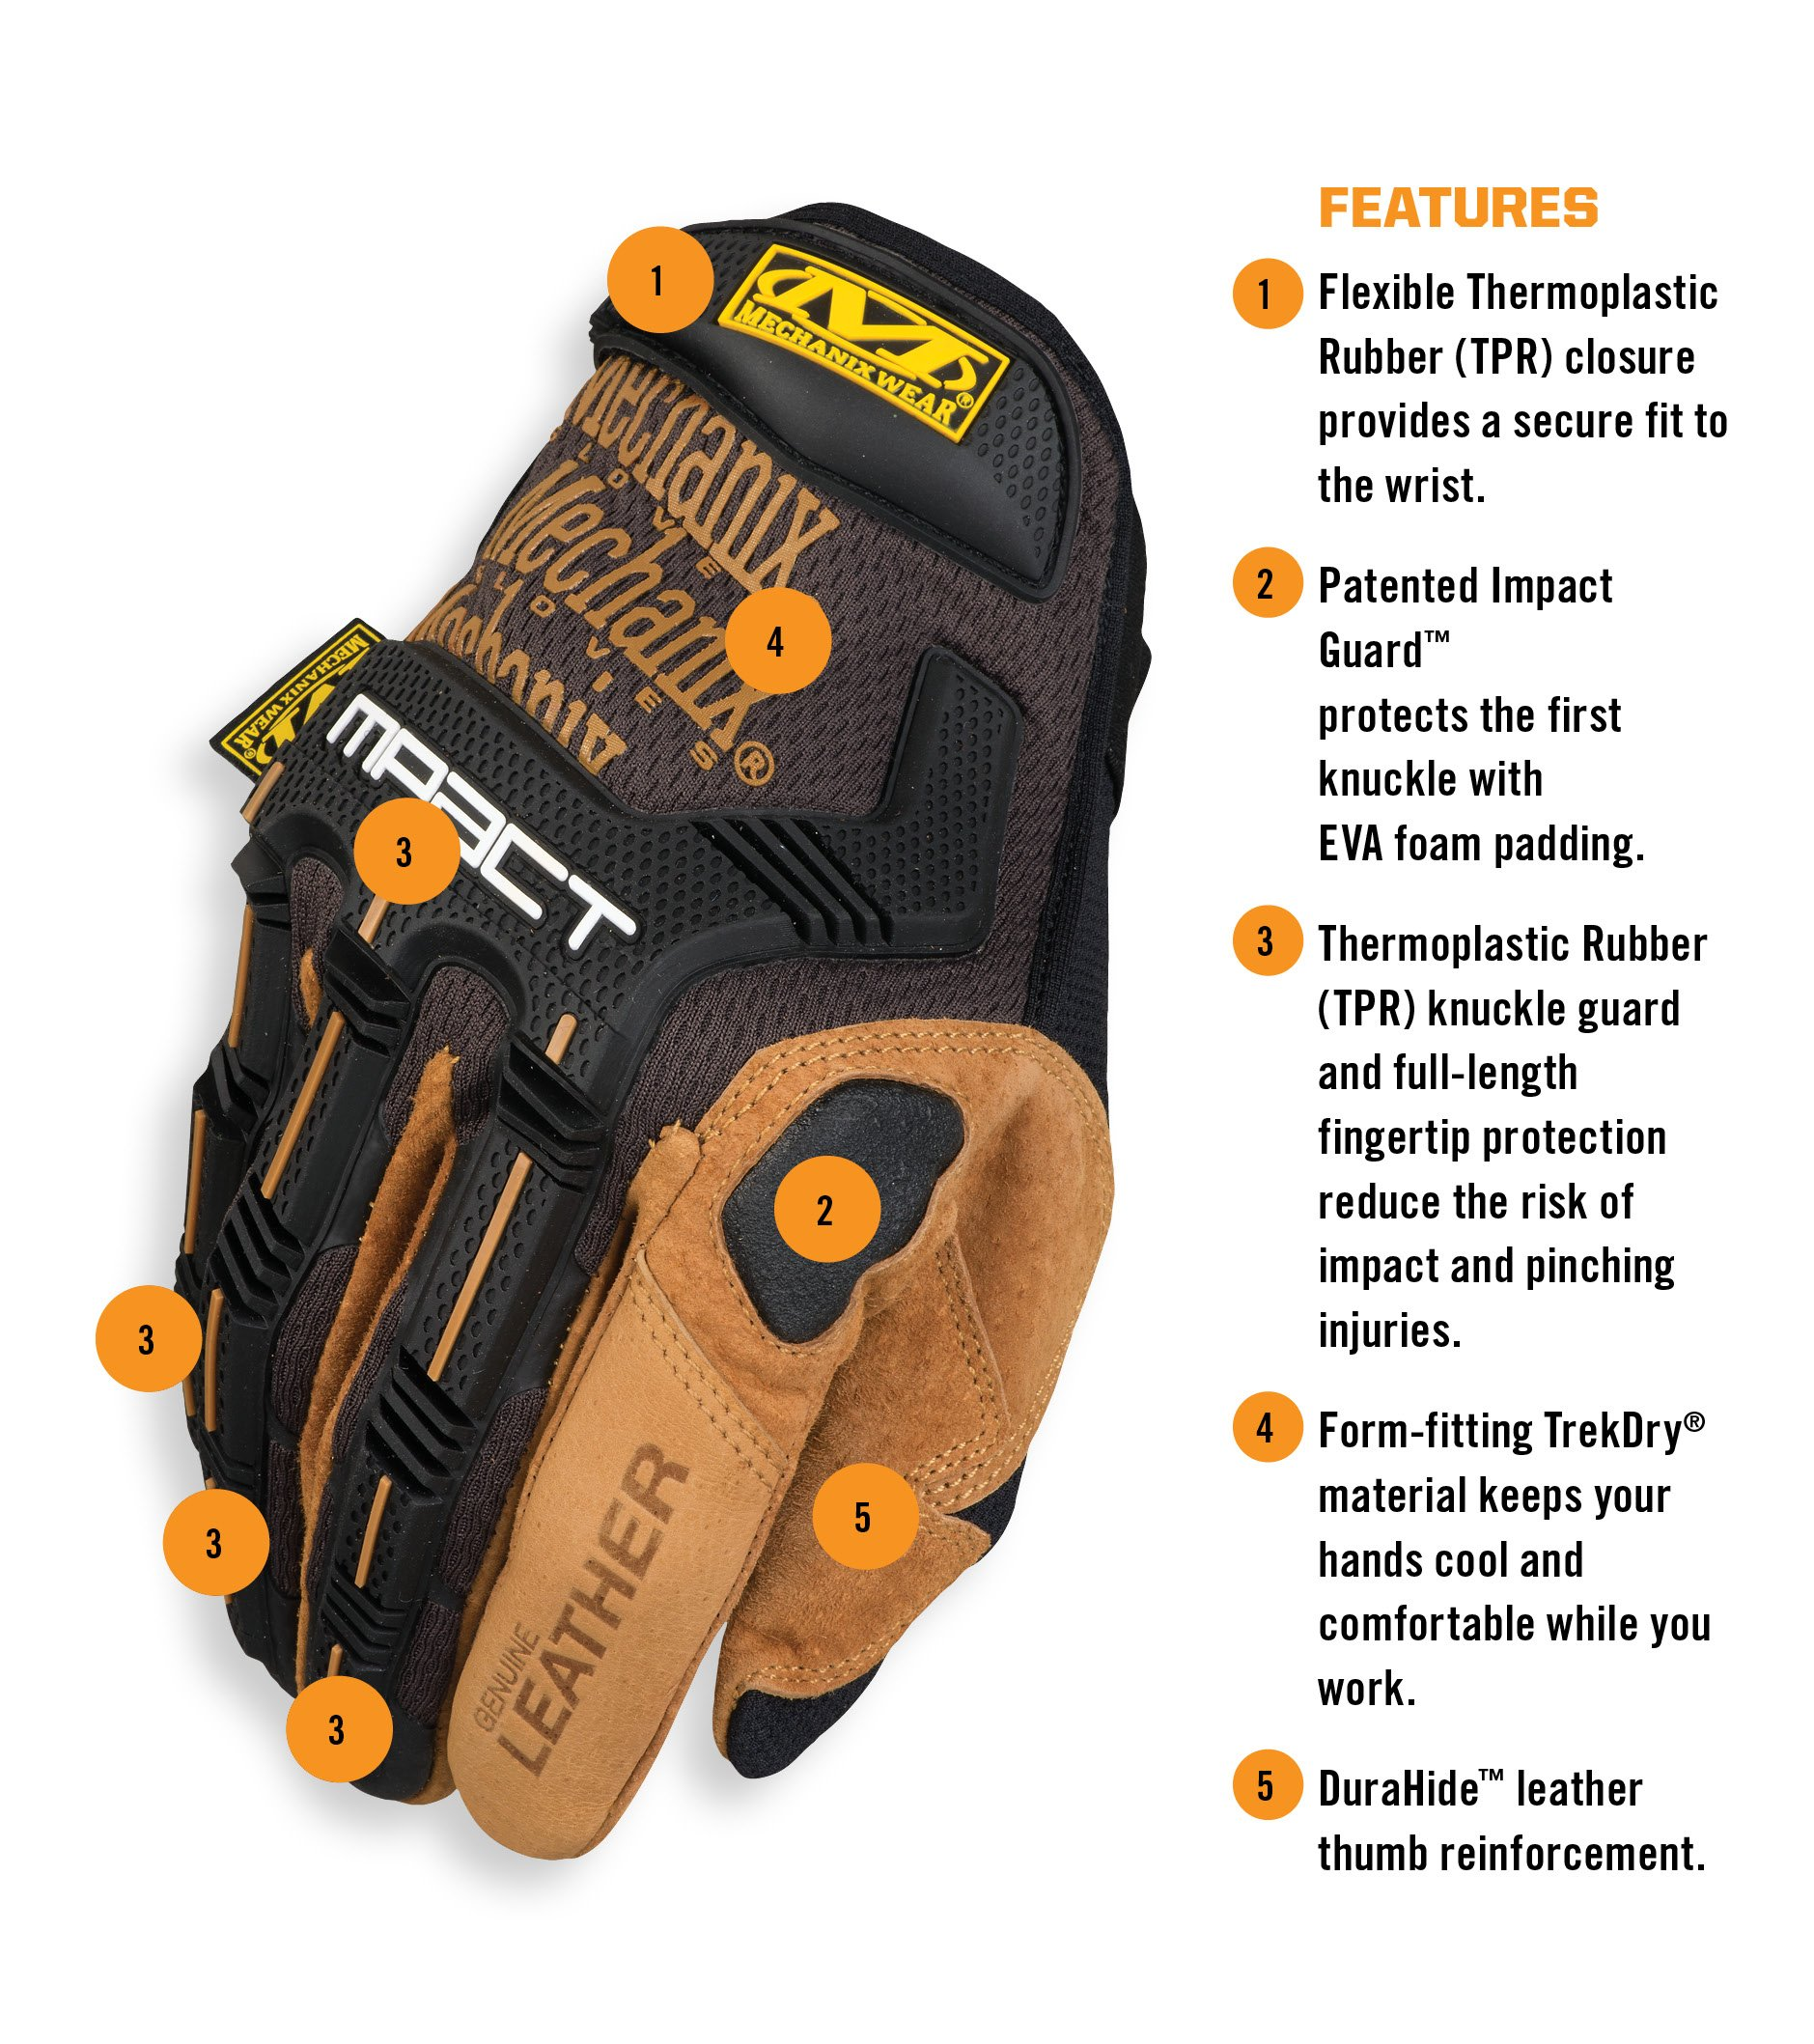 Mechanix Wear - Leather M-Pact Gloves (Large, Black/Brown) by Mechanix Wear (Image #2)